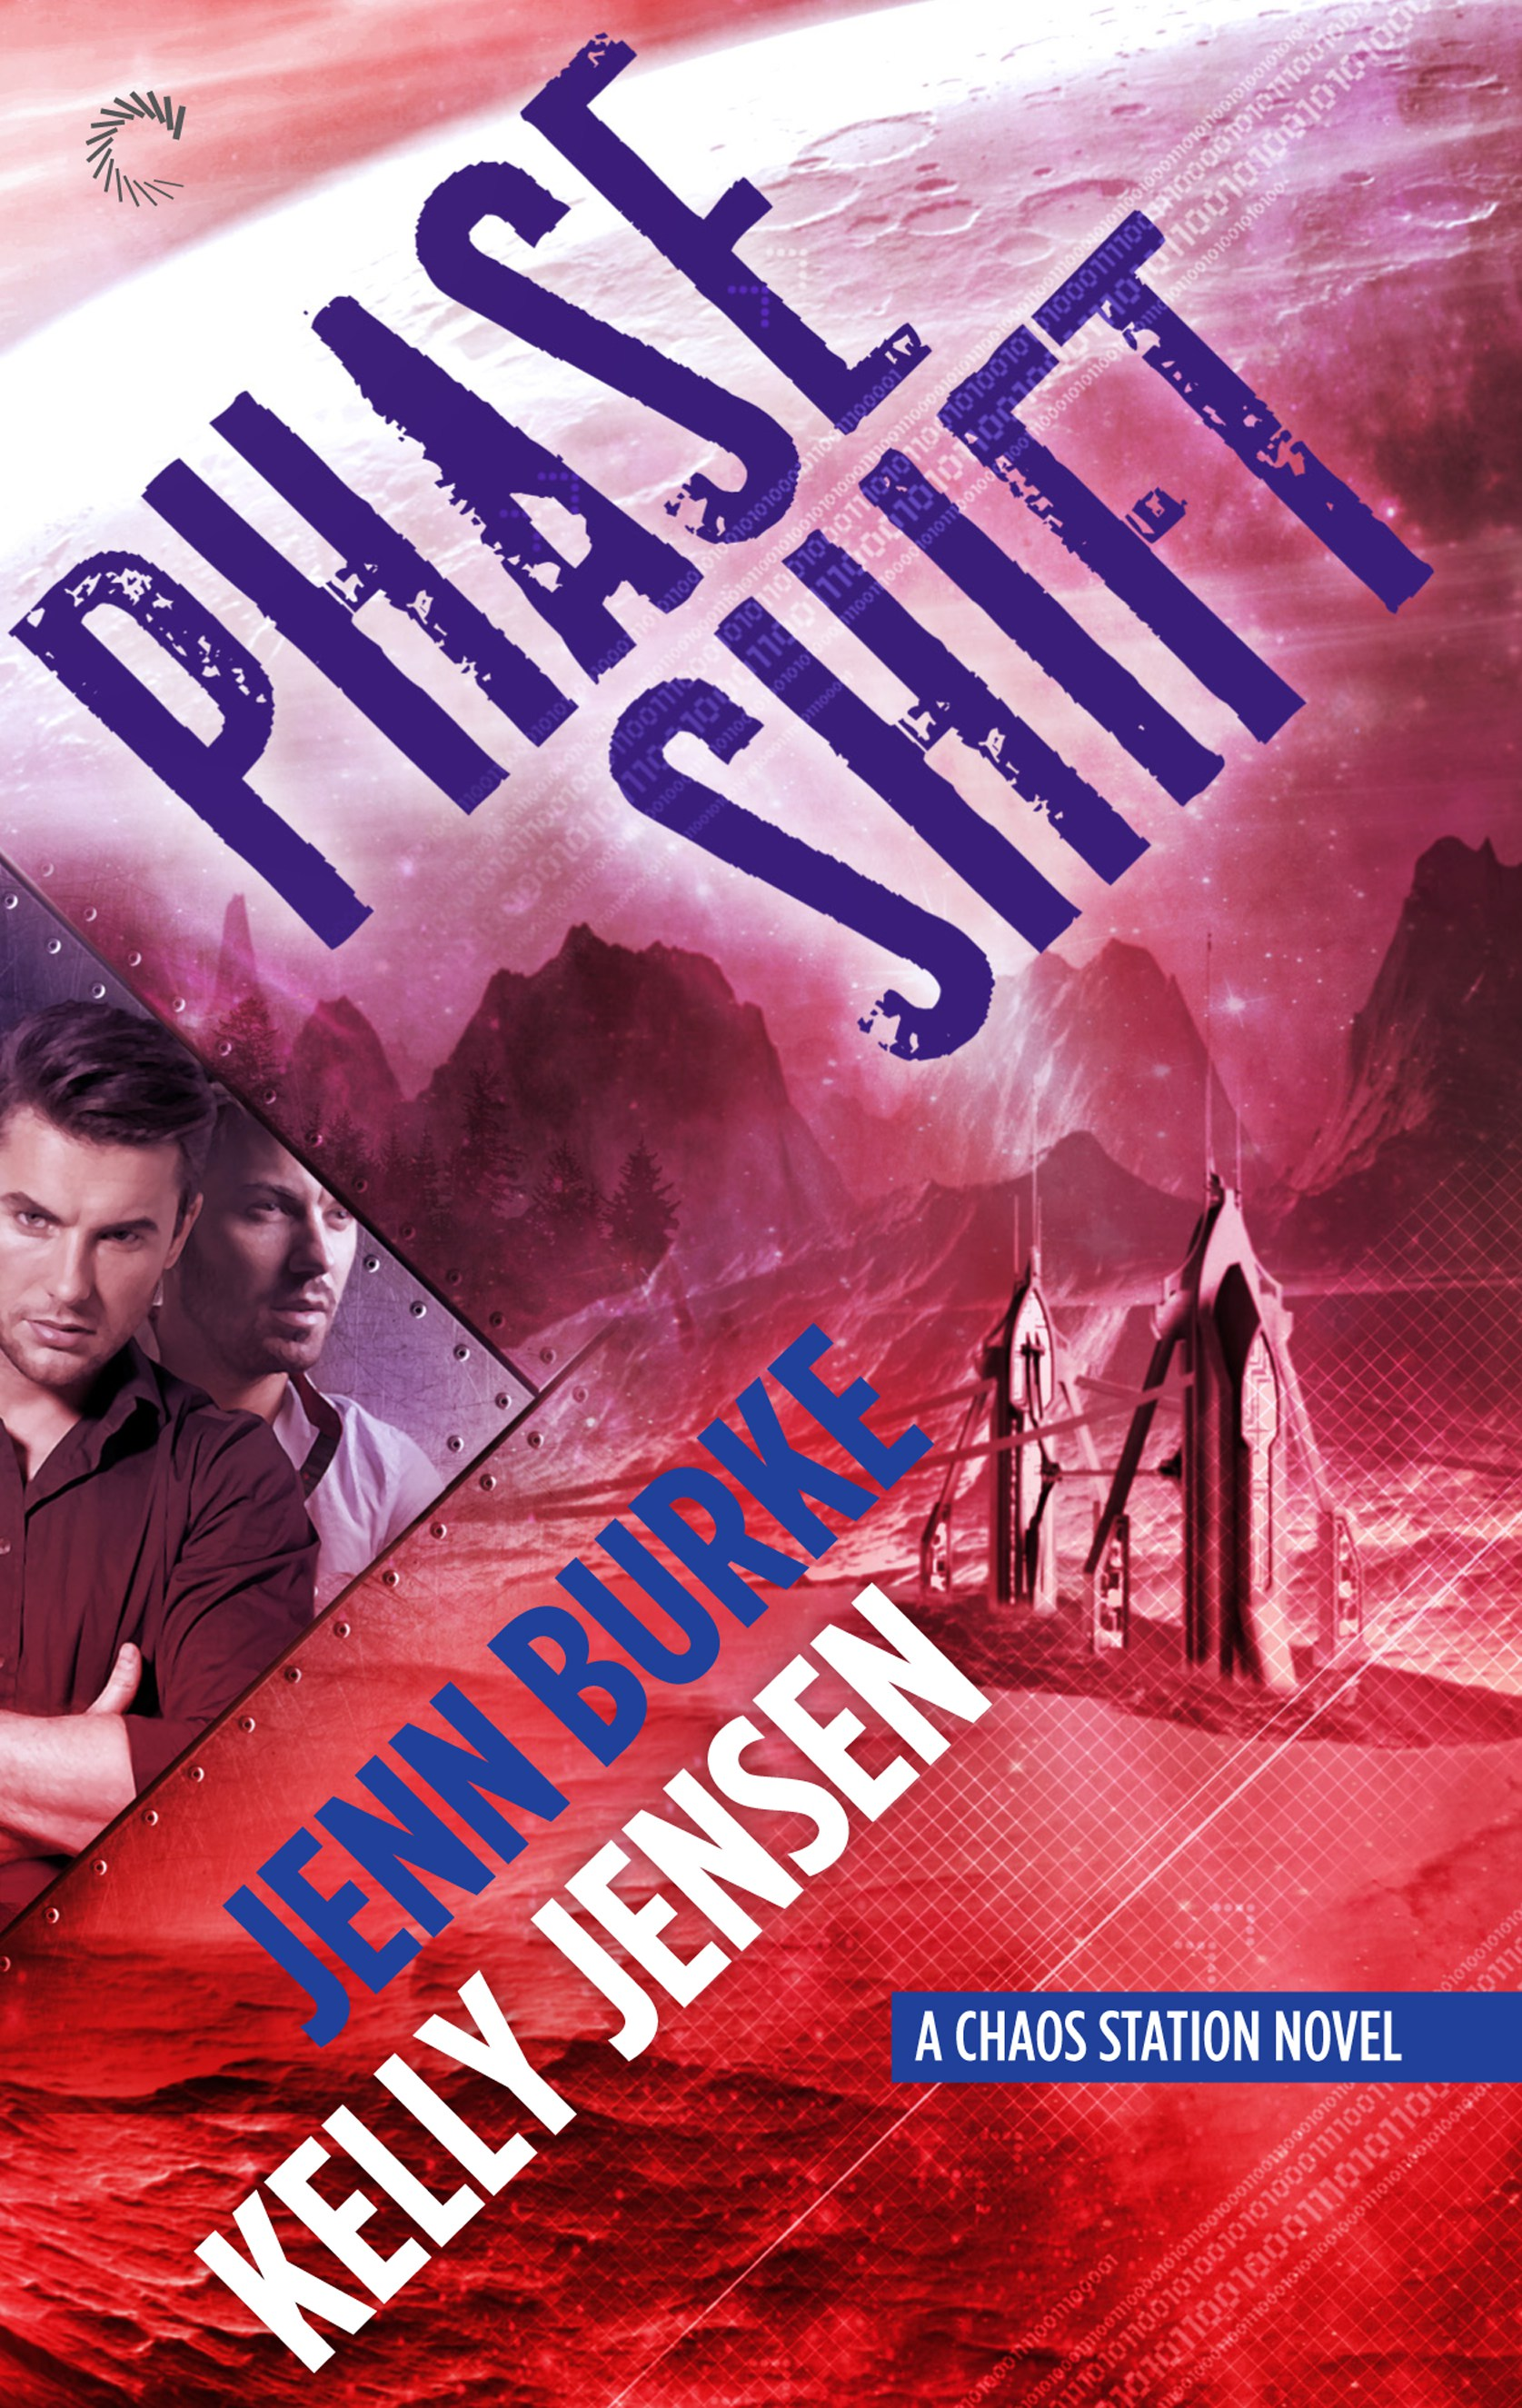 Cover for PHASE SHIFT (Chaos Station #5)